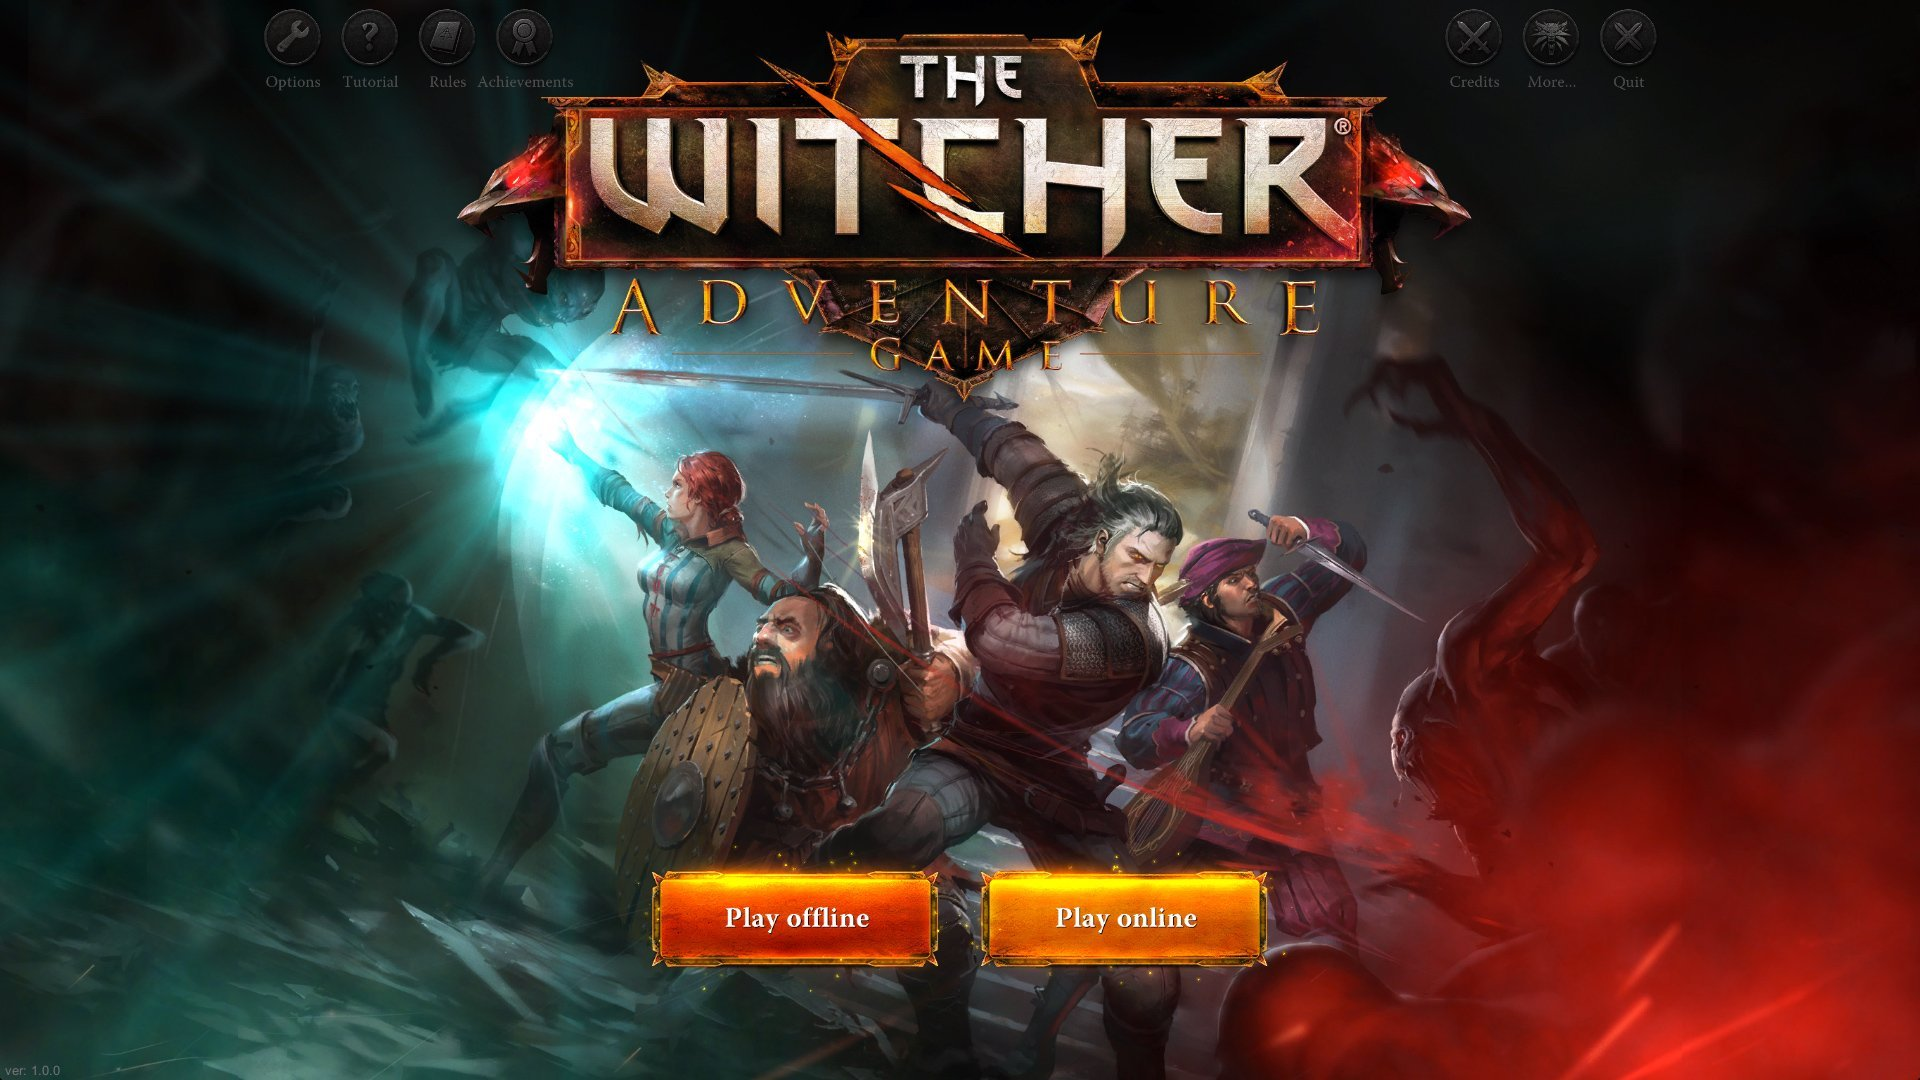 The Witcher Adventure Game passe du jeu de plateau au jeu vidéo